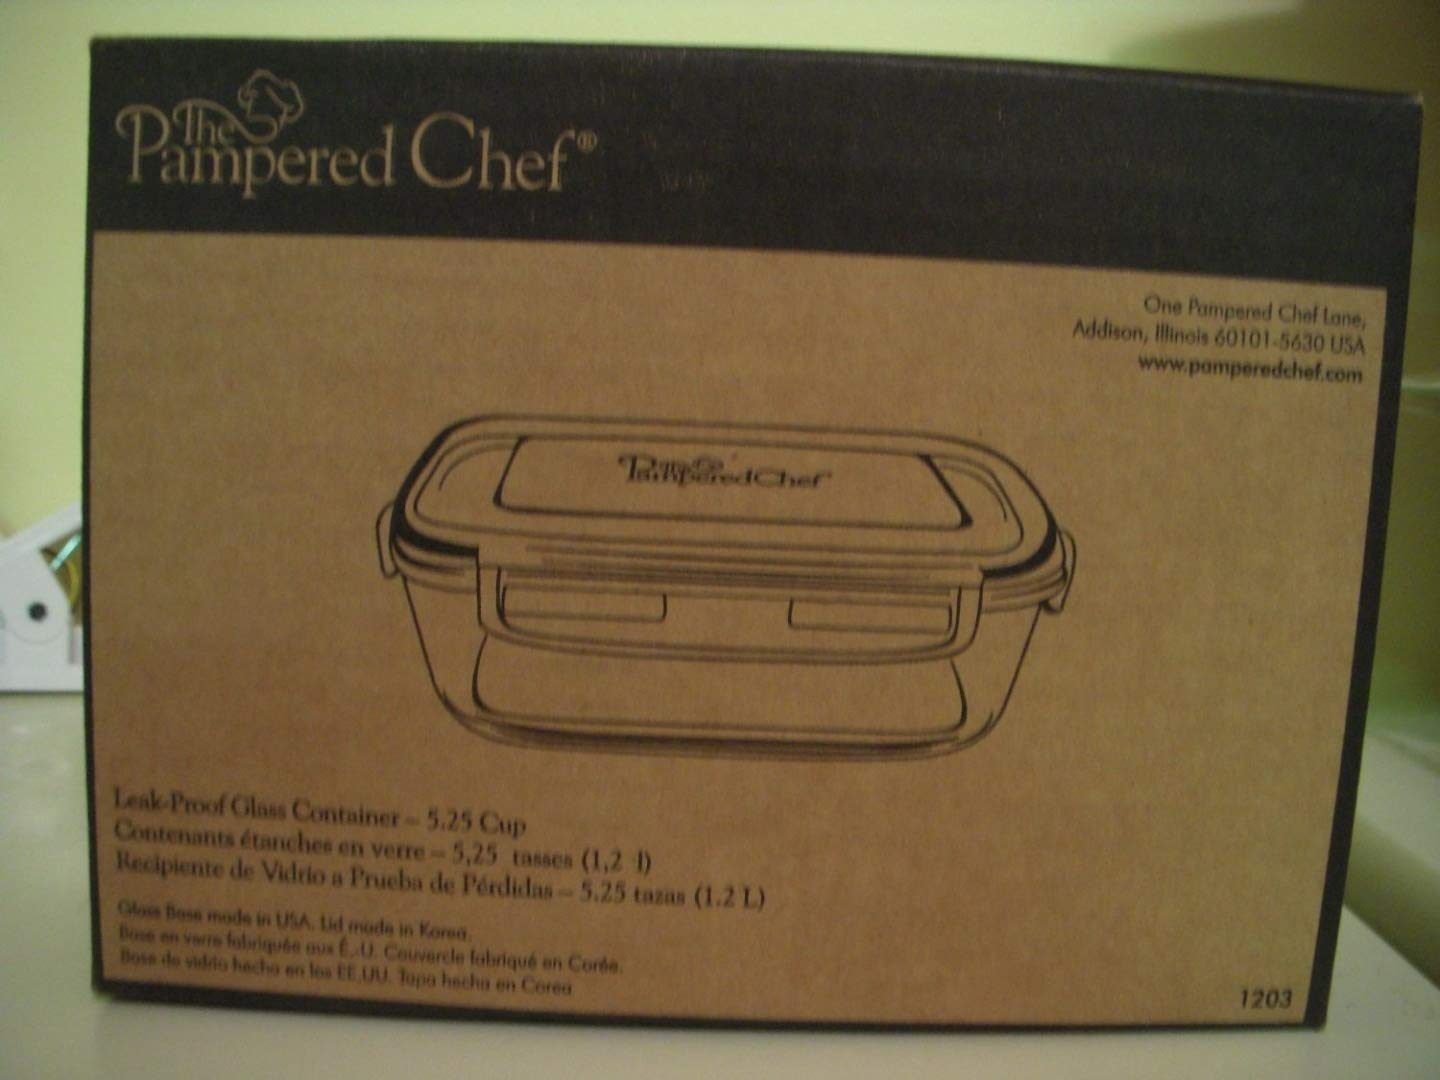 Pampered Chef 5 1/4-cup Rectangle Leakproof Glass Container with Lid The Pampered Chef 1203